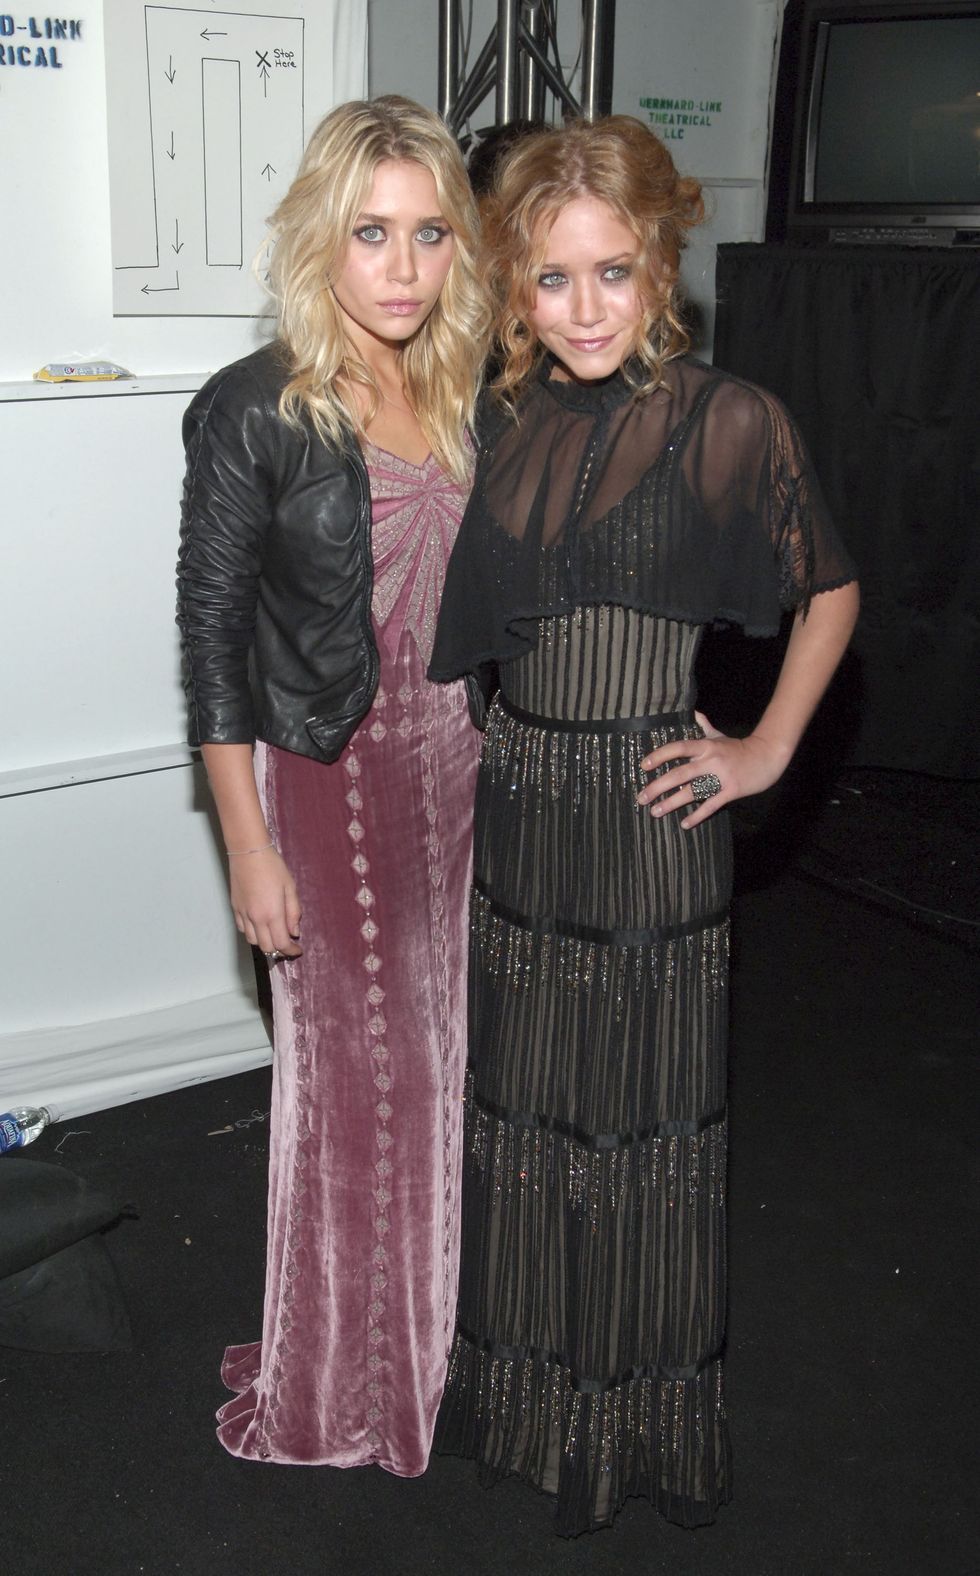 February 5, 2006 The twins stunned backstage at Badgley Mischka's NYFW show, with Ashley in a mauve, floor-grazing velvet gown, and Mary-Kate in a black, sparkling gown with stripes.